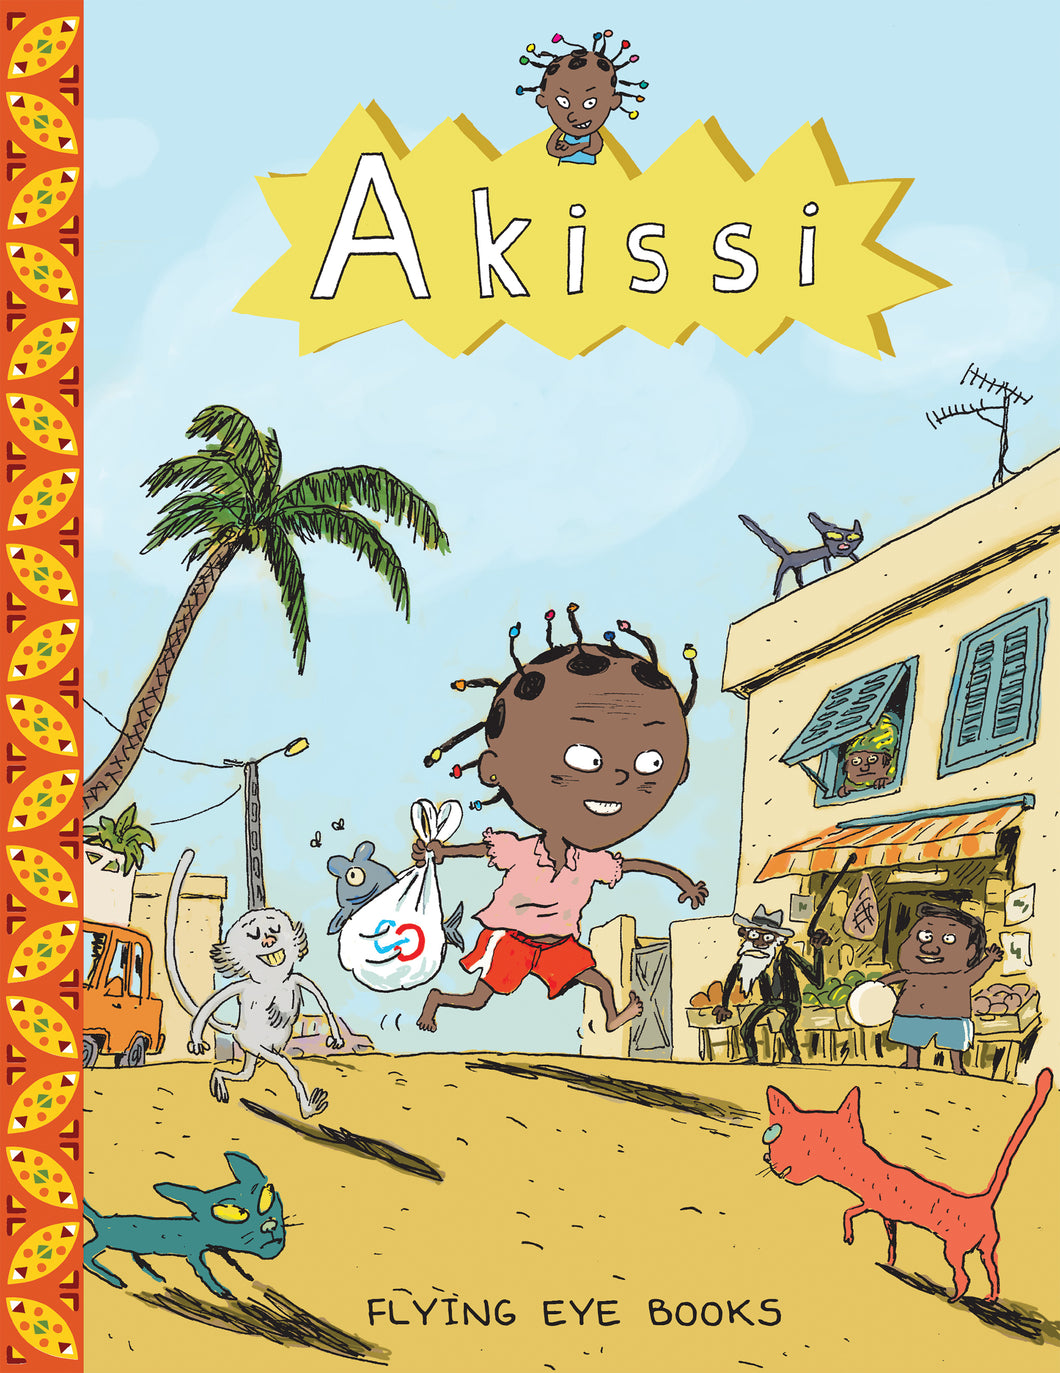 Akissi by Marguerite Abouet and Mathieu Sapin